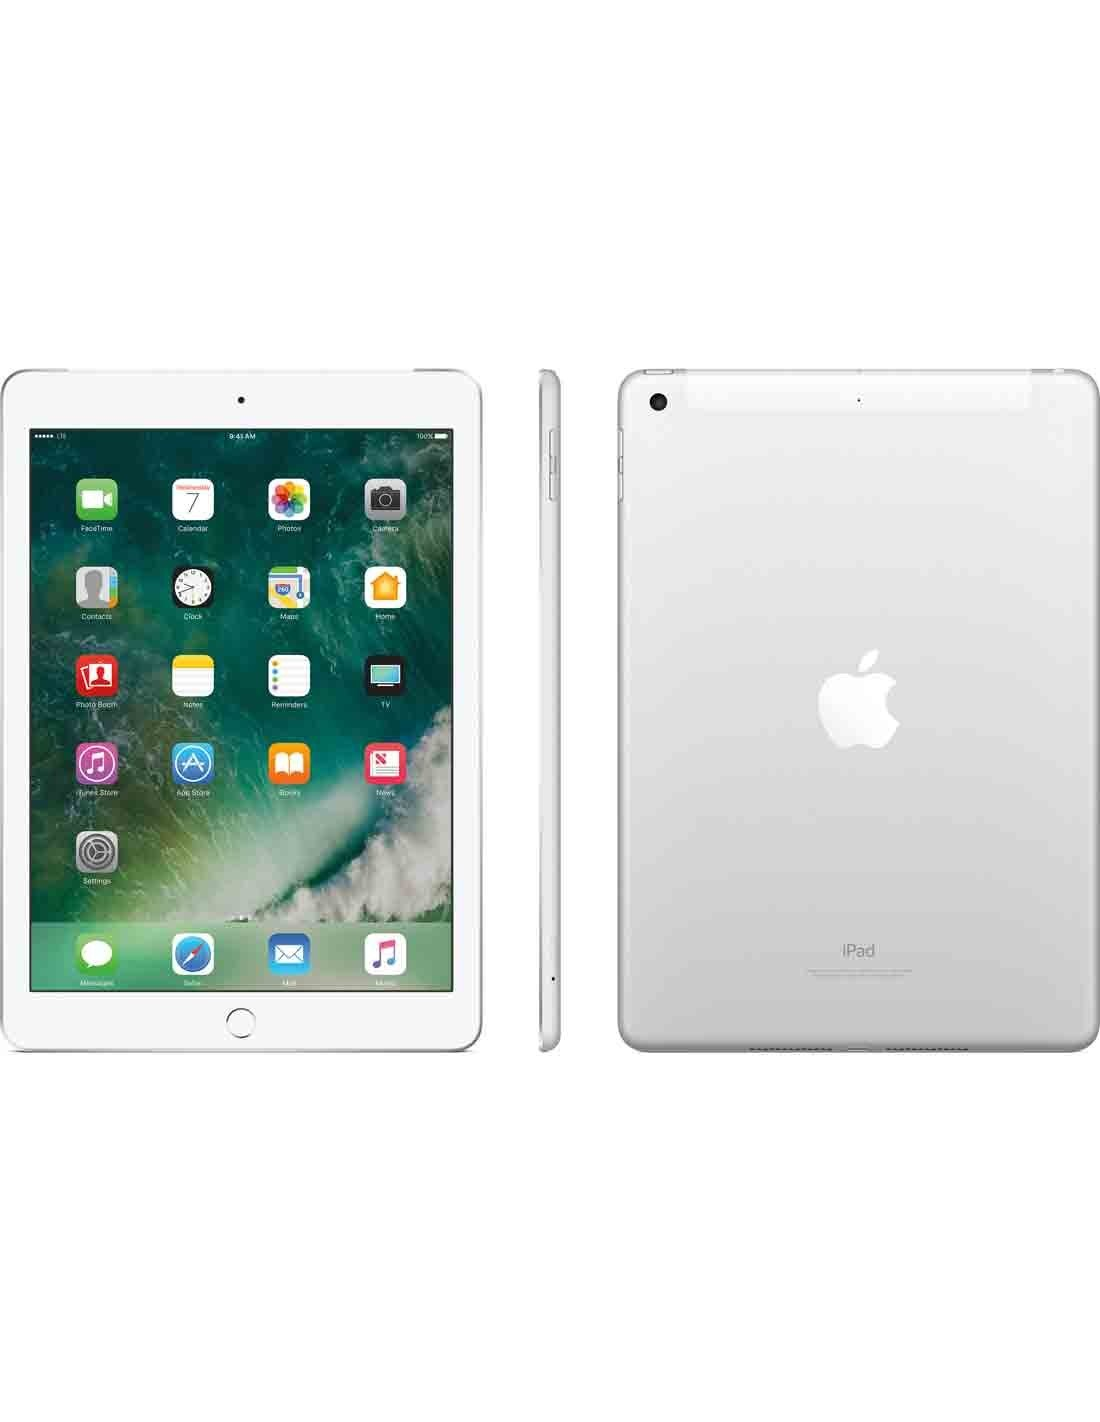 Apple iPad Air 2 Wi-Fi and Cellular 128GB - Silver MGWM2B/A Dubai